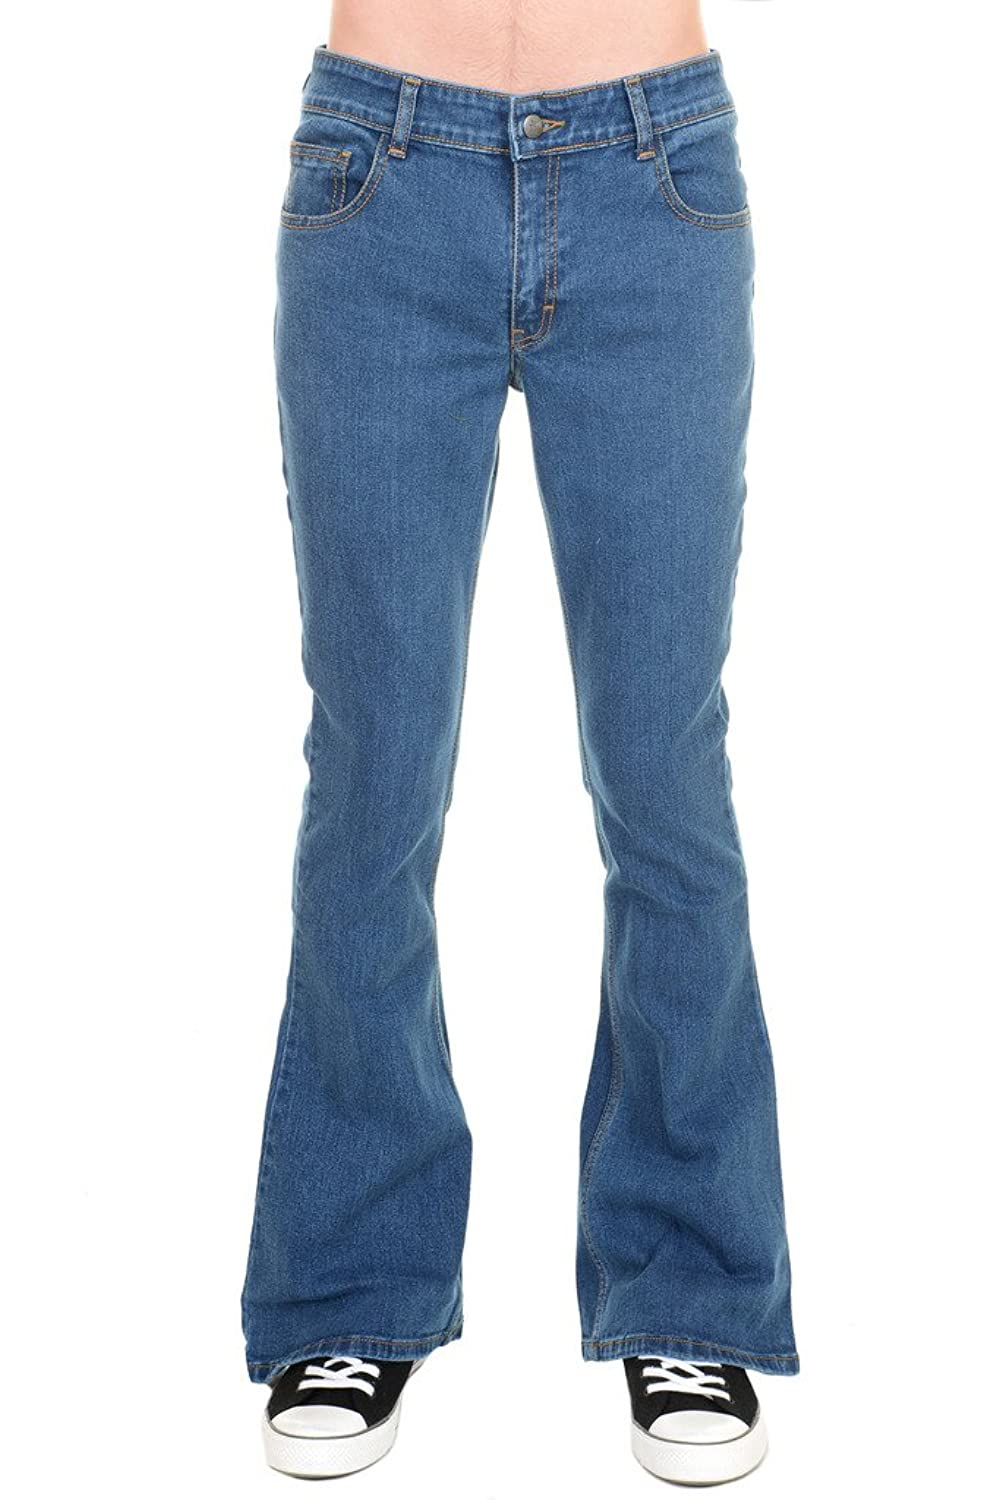 fda0f70750c 1960s Men's Clothing, 70s Men's Fashion Run & Fly Stonewash Stretch Denim Bell  Bottom Flares